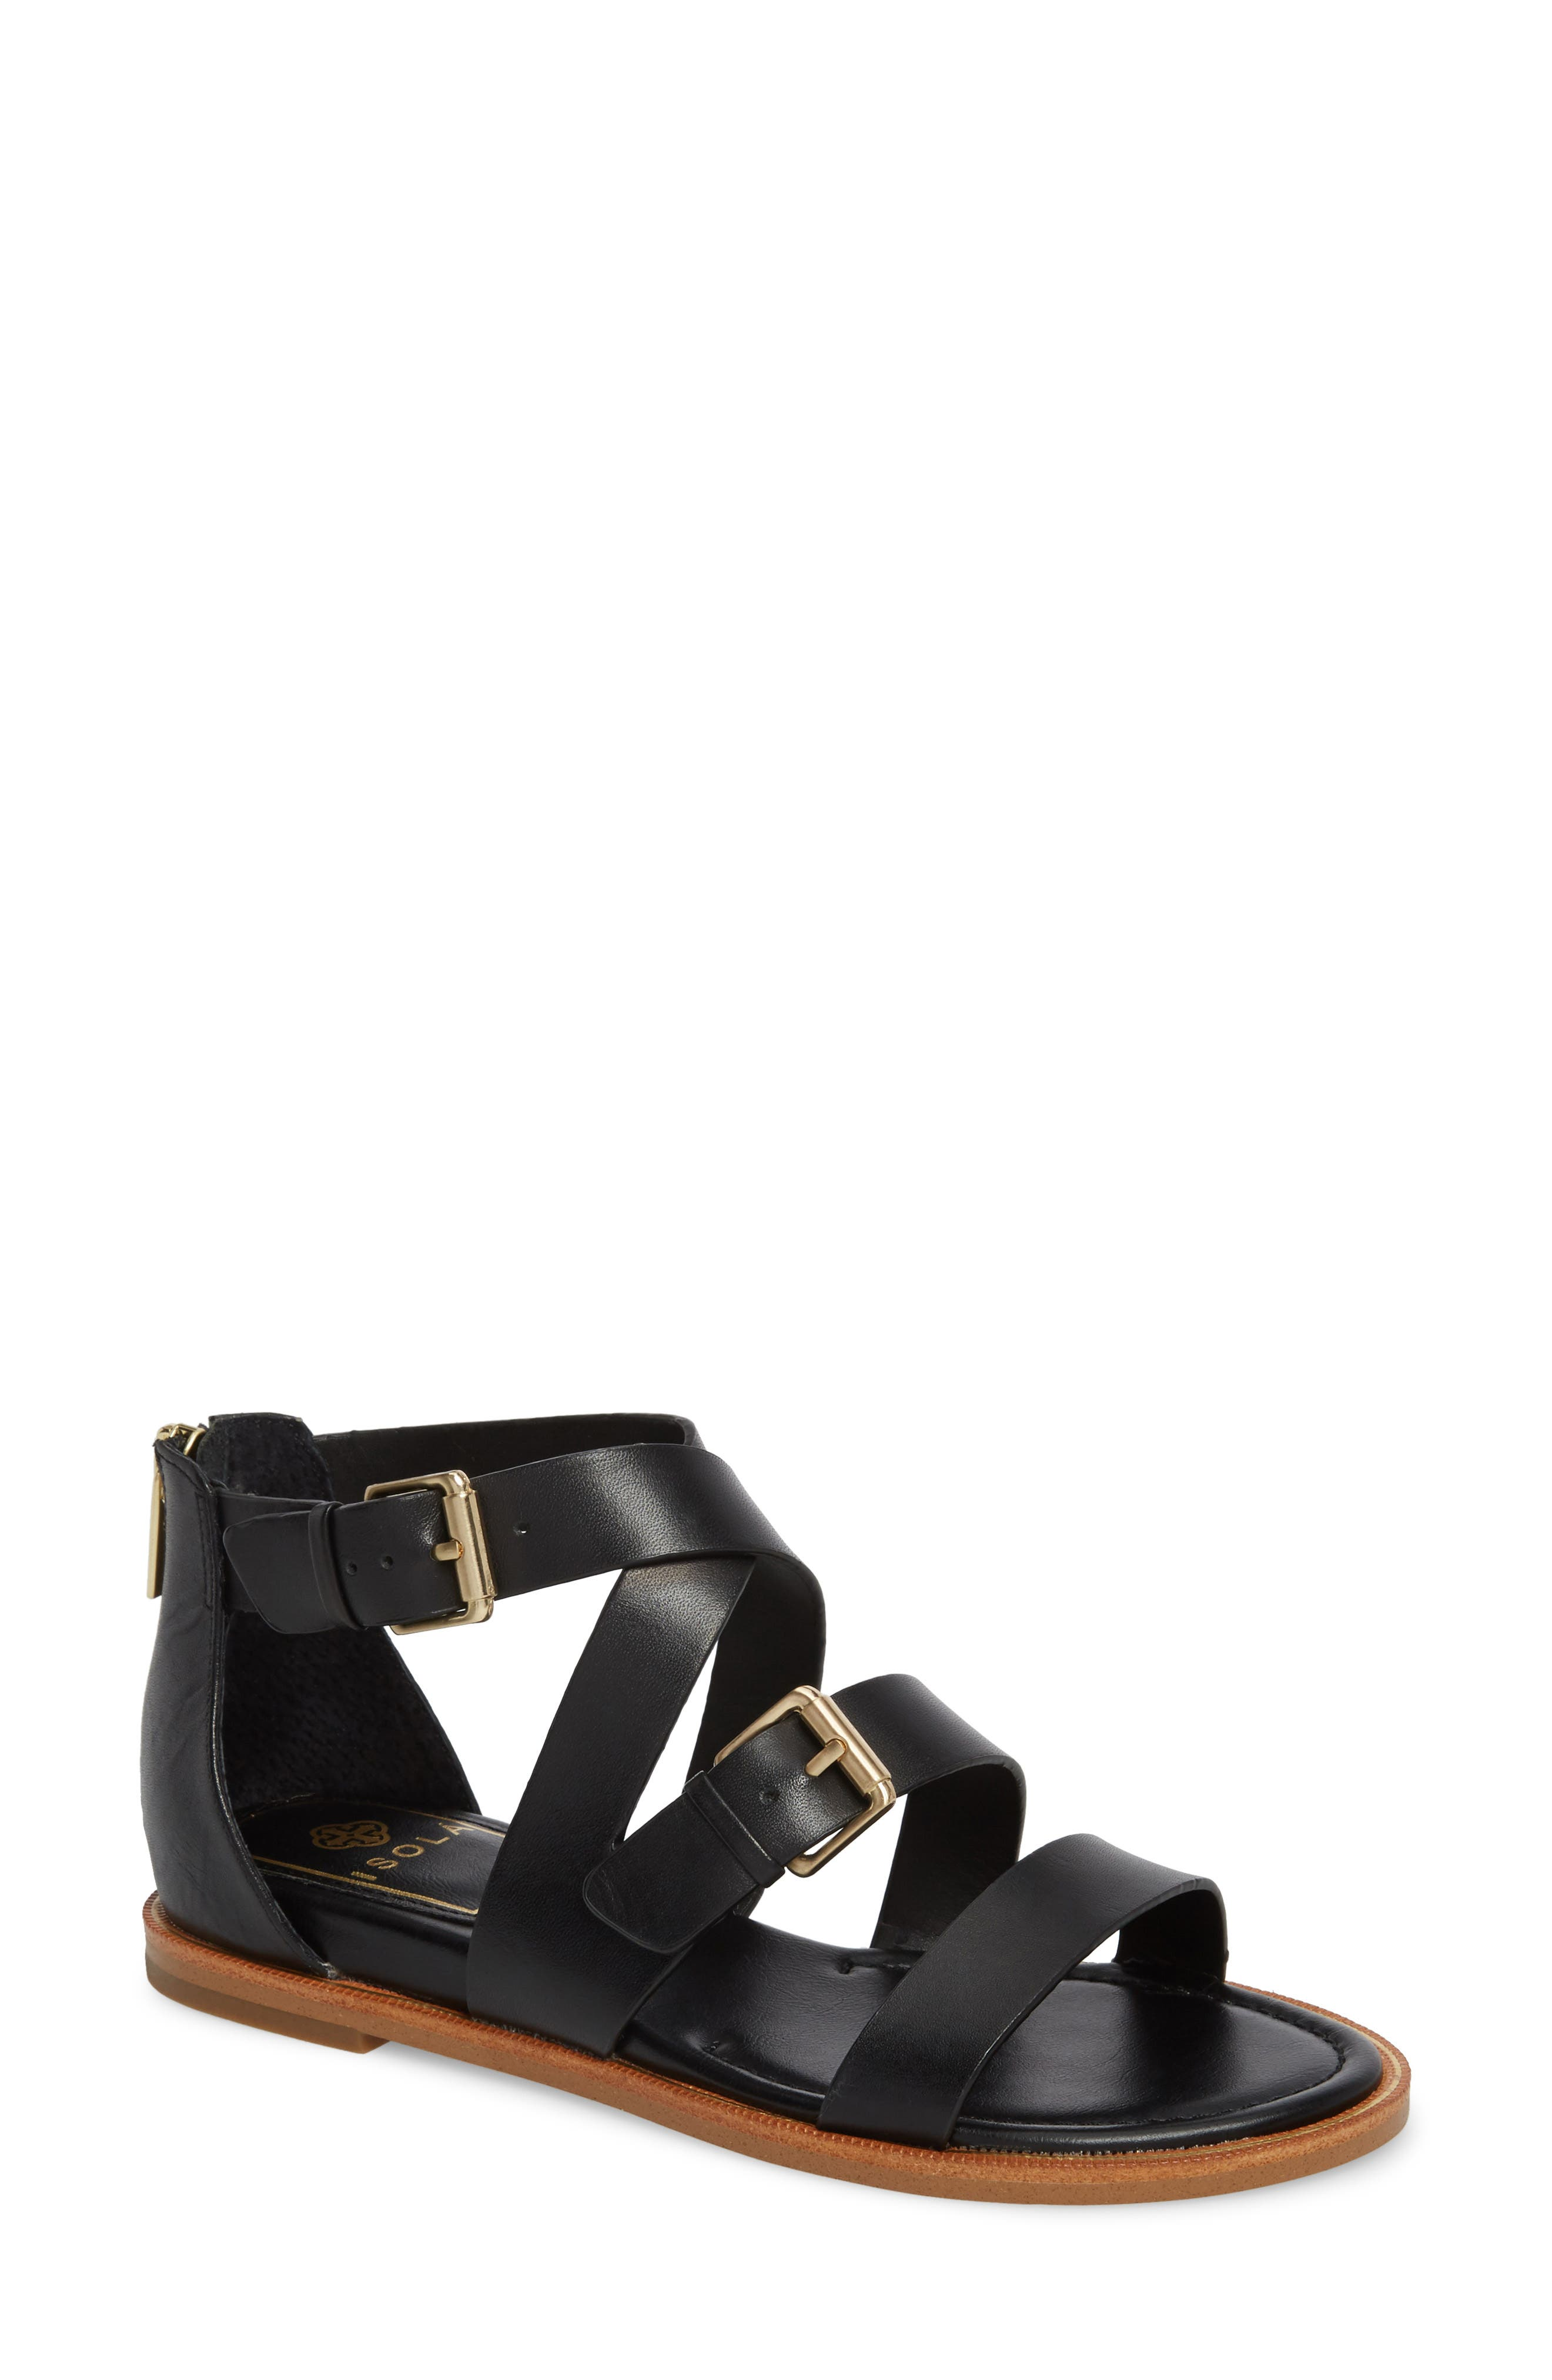 Isola Sharni Sandal,                             Main thumbnail 1, color,                             001